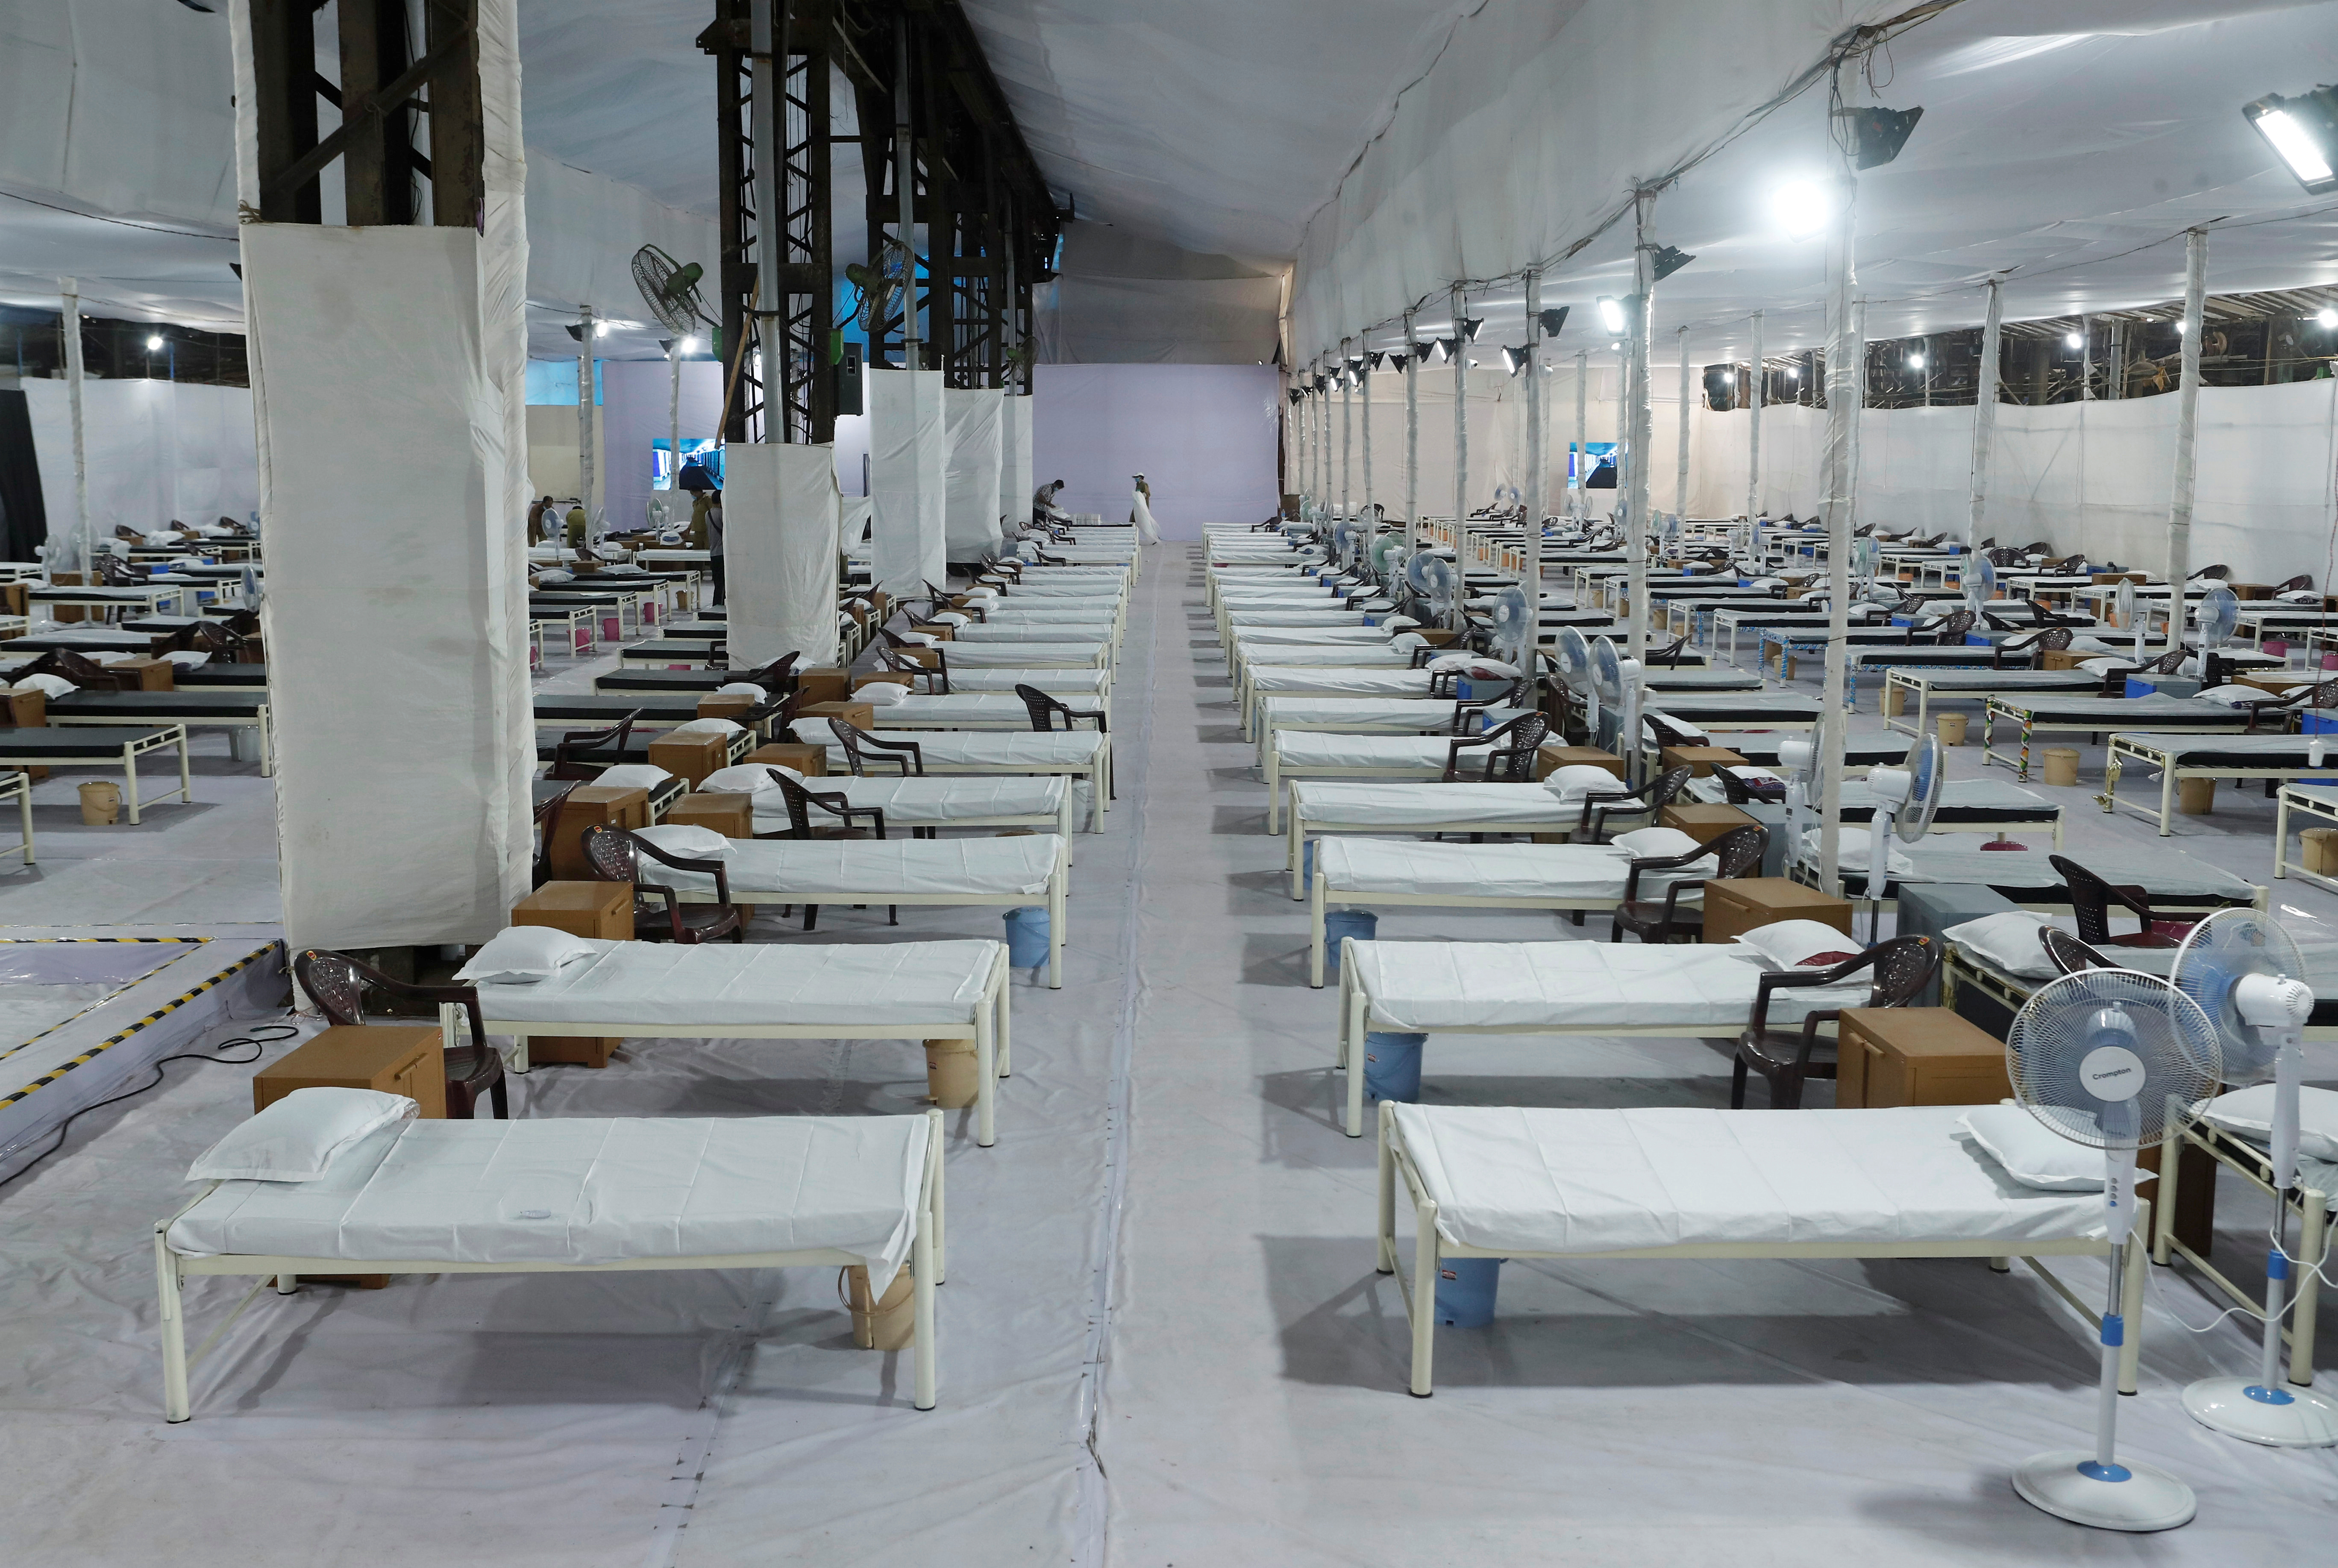 Beds are seen at a recently constructed quarantine facility for patients diagnosed with the coronavirus disease (COVID-19) in Mumbai, India, June 22, 2020. REUTERS/Francis Mascarenhas